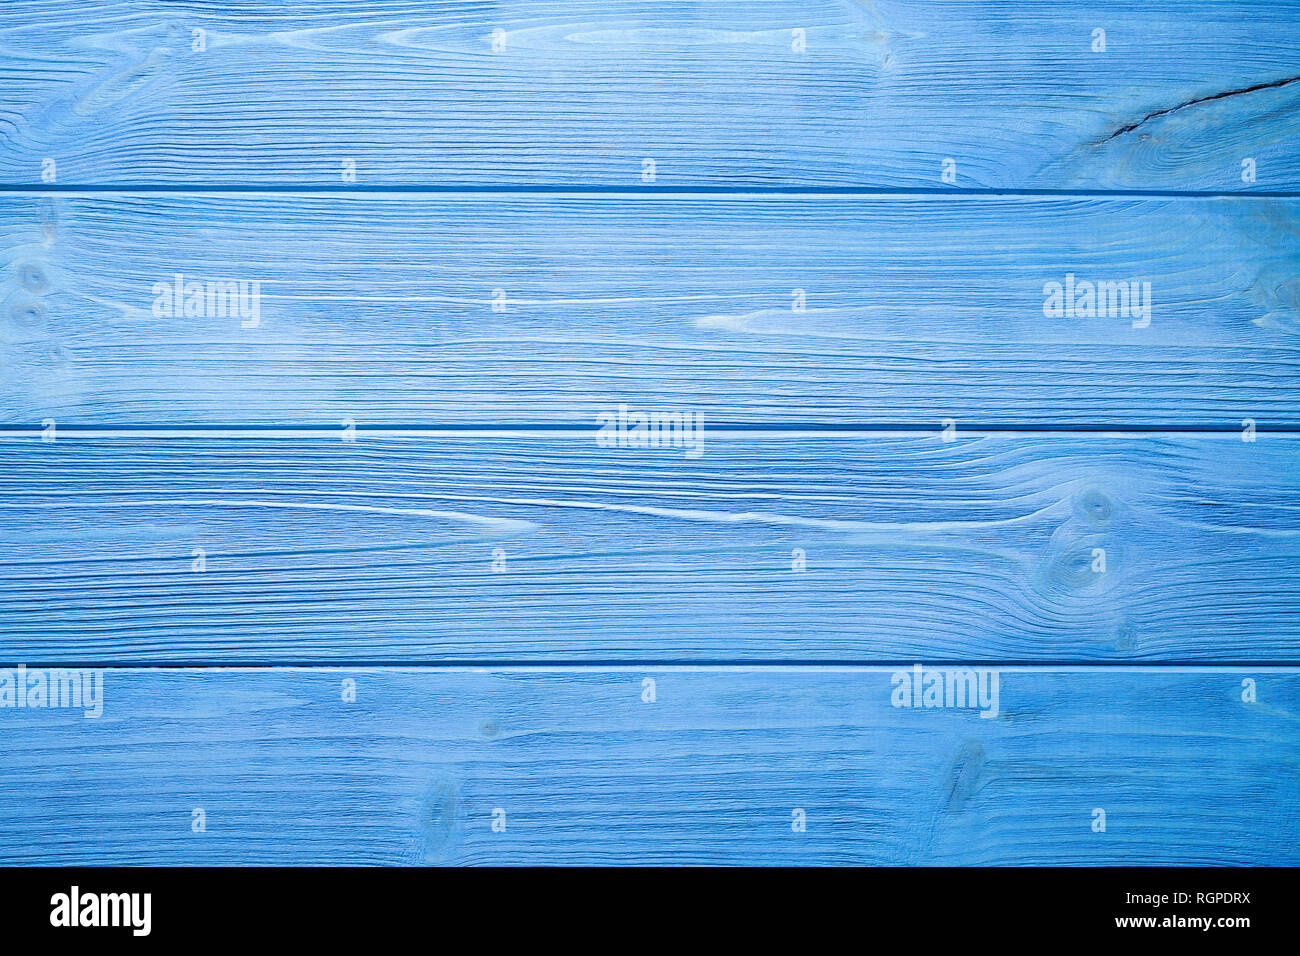 Blue planks - wooden wall background or texture - Stock Image